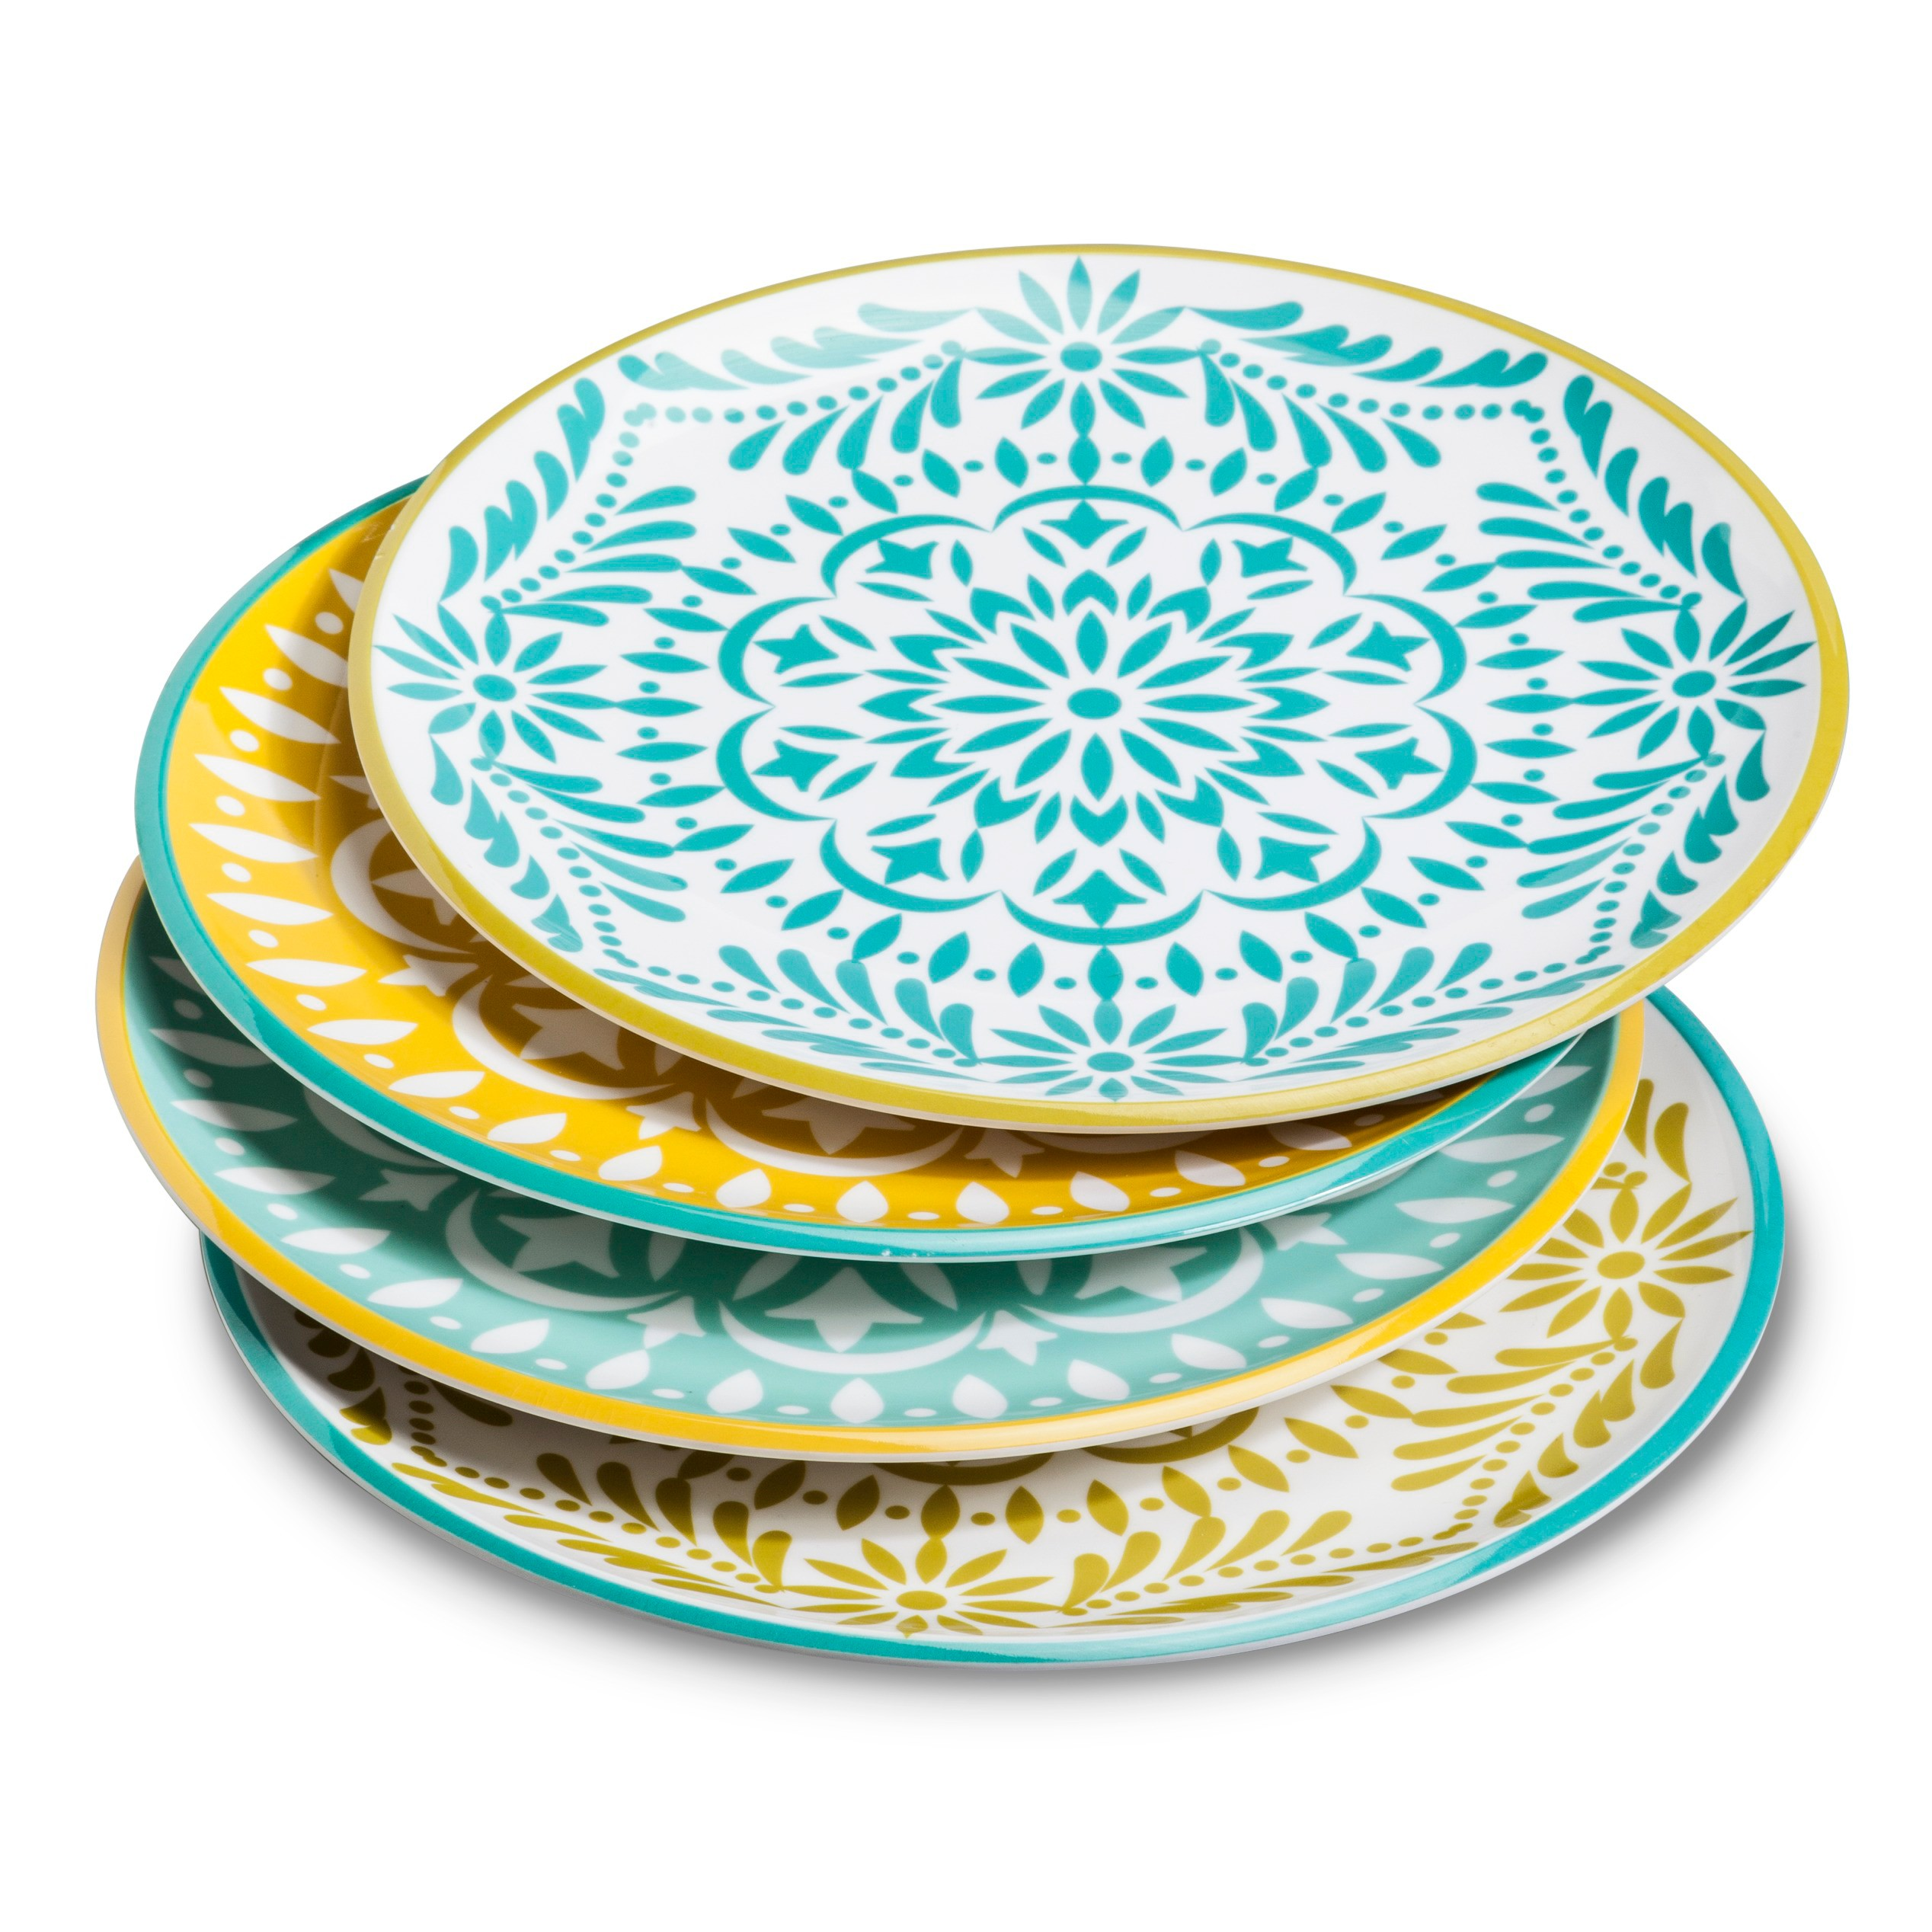 These Target plates are a perfect budget friendly option for summer dining!